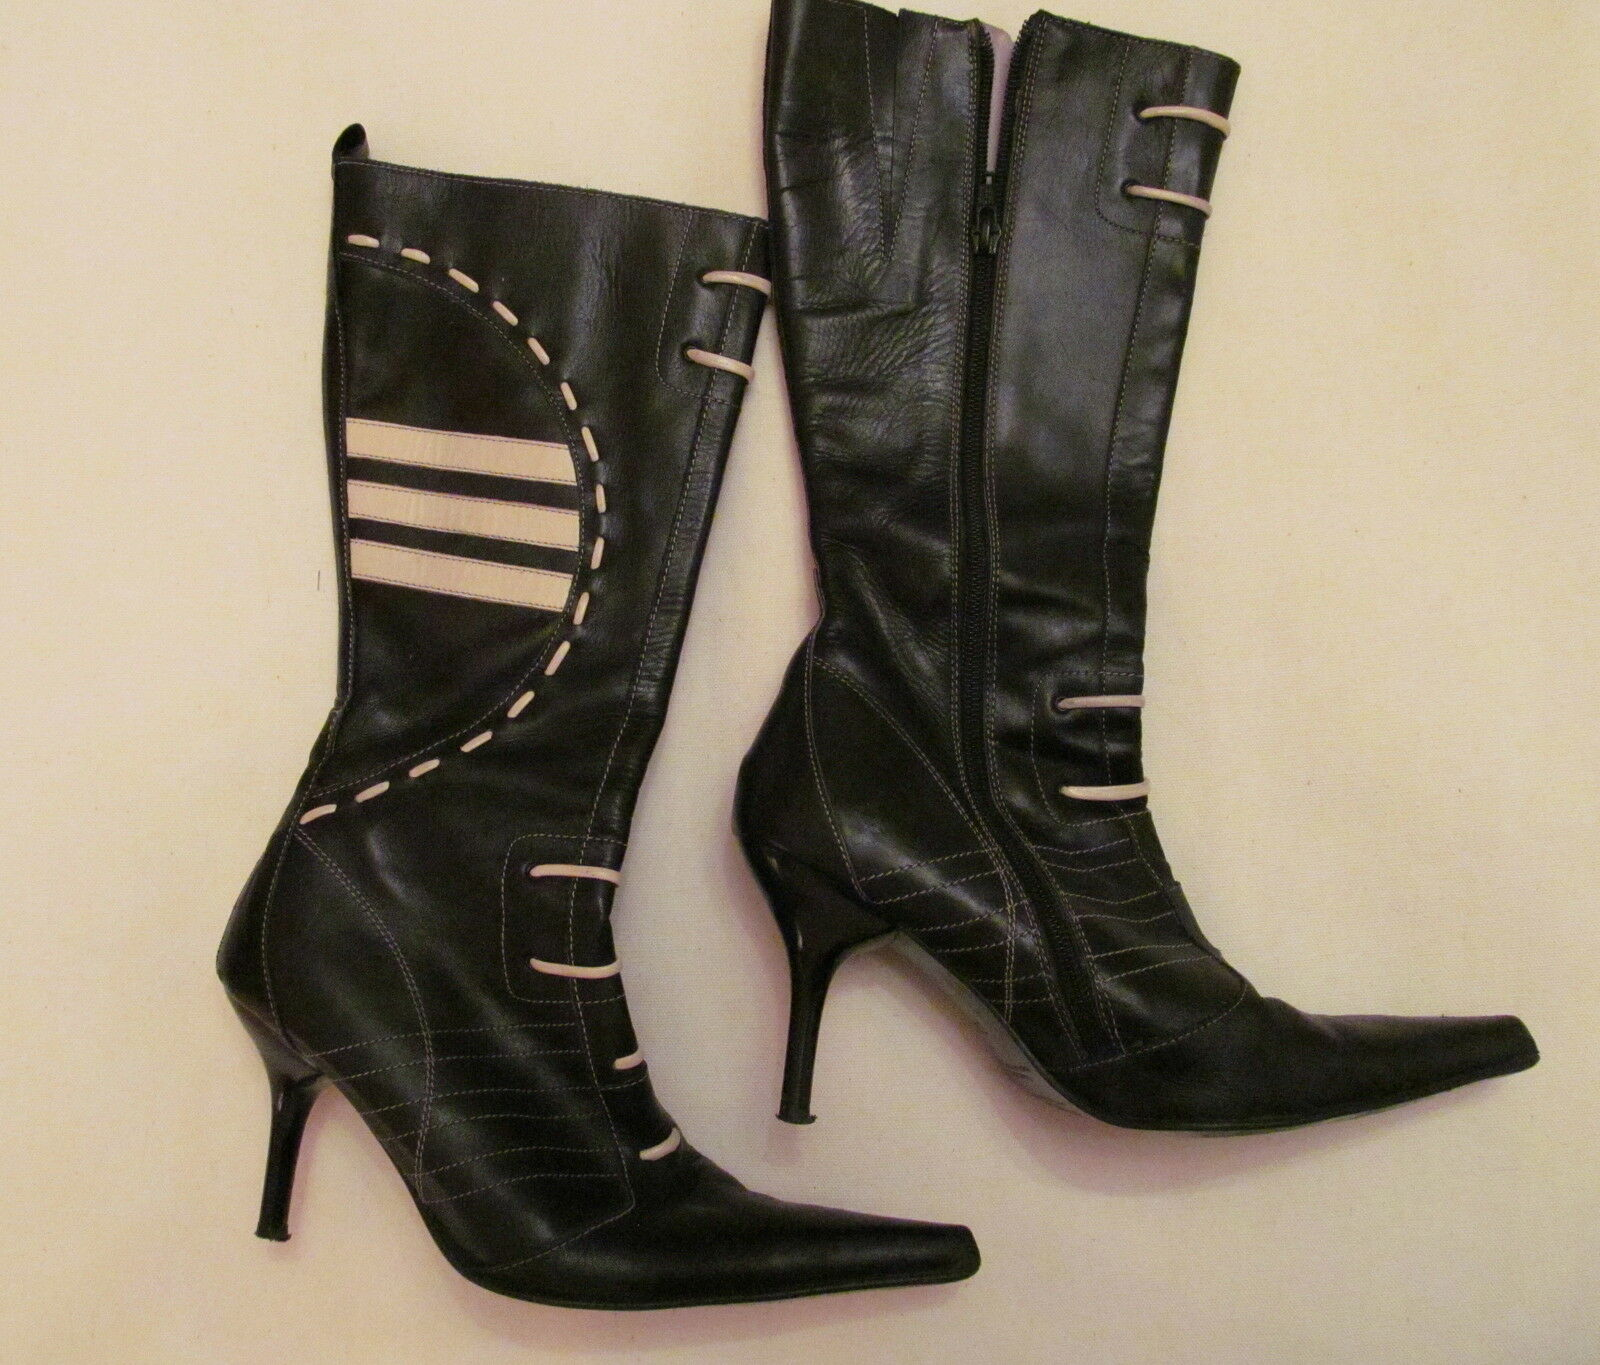 M C & POWER schwarz and WEISS racing stripes sporty sexy high heel tall boots 36 6